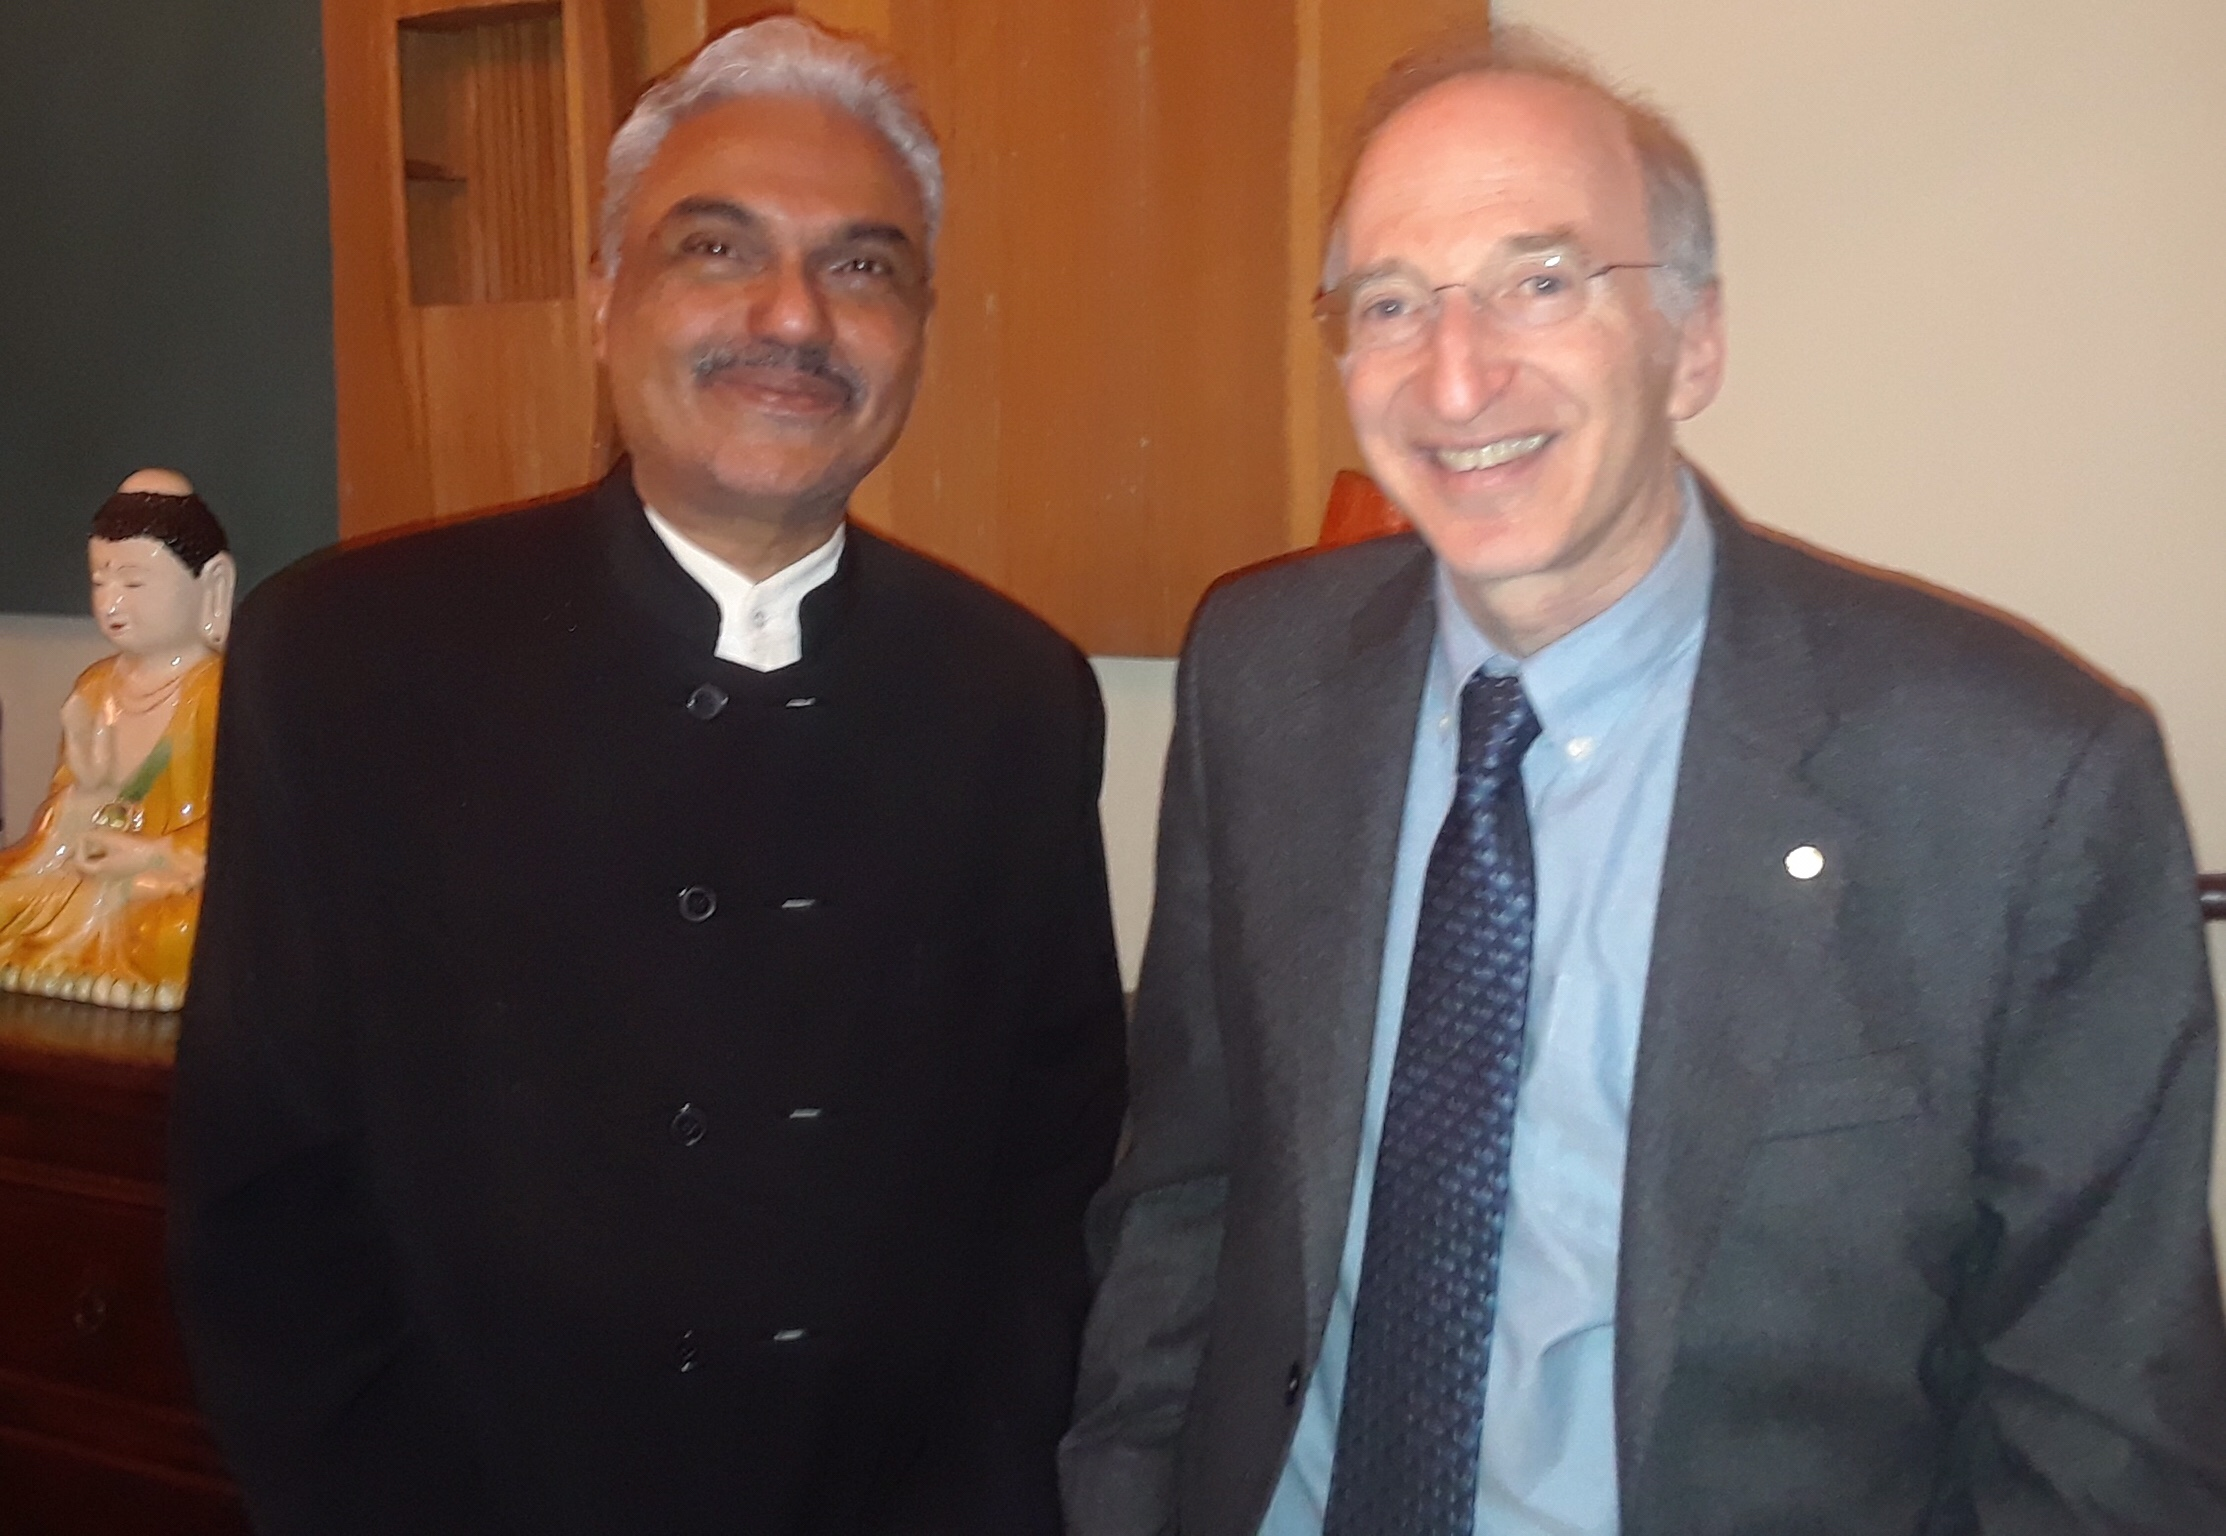 Photo: George Pinto with Nobel Prize winner Prof. Brian Kobilka (Chemistry, 2012)